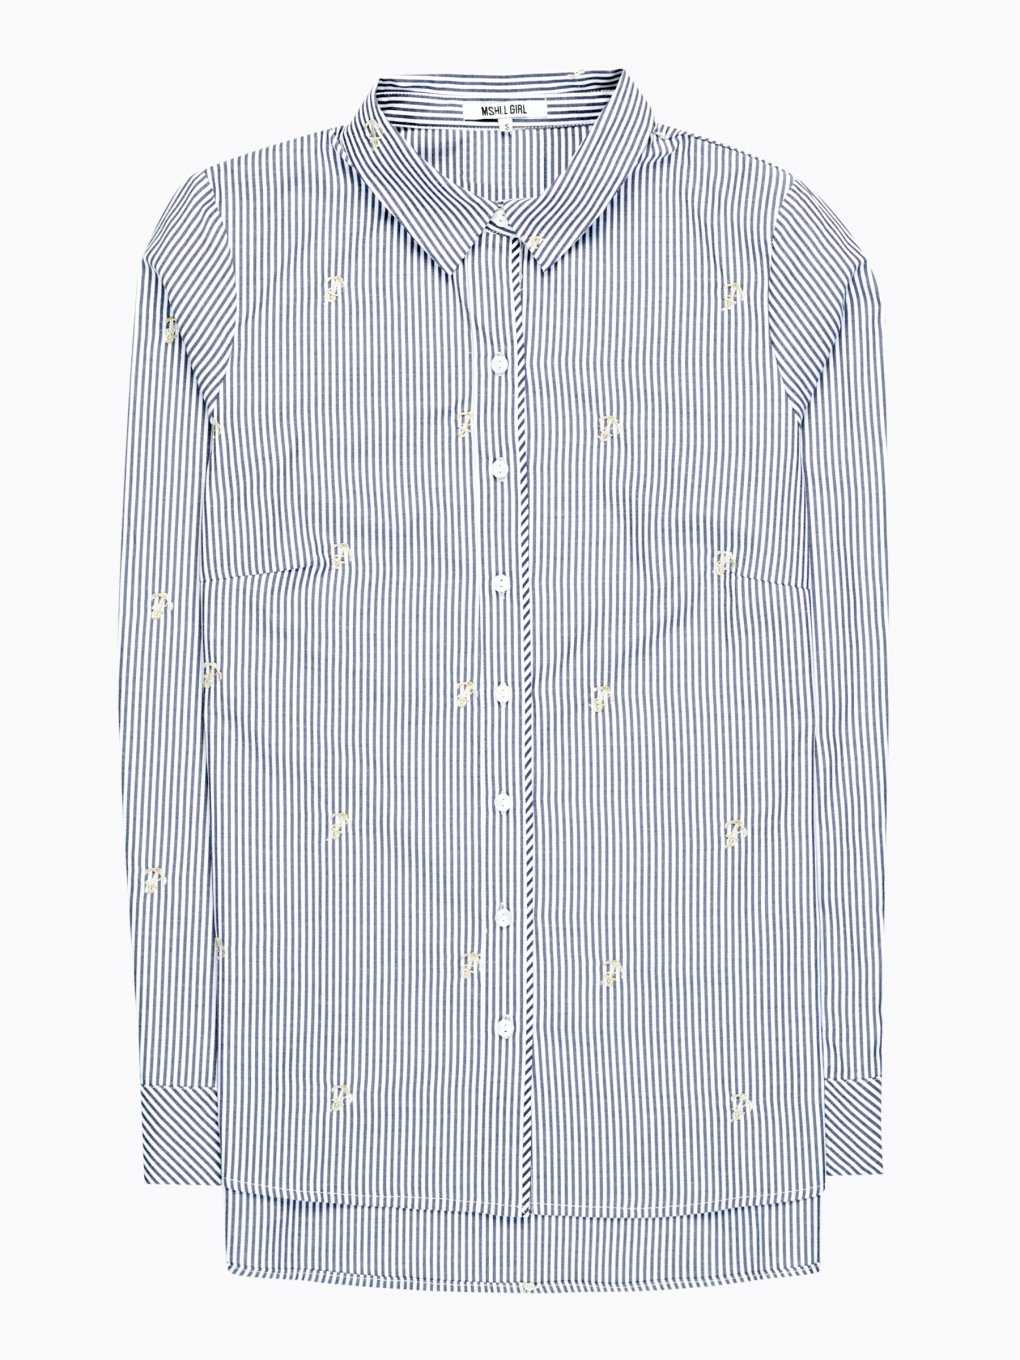 STRIPED SHIRT WITH ANCHOR EMBROIDERY